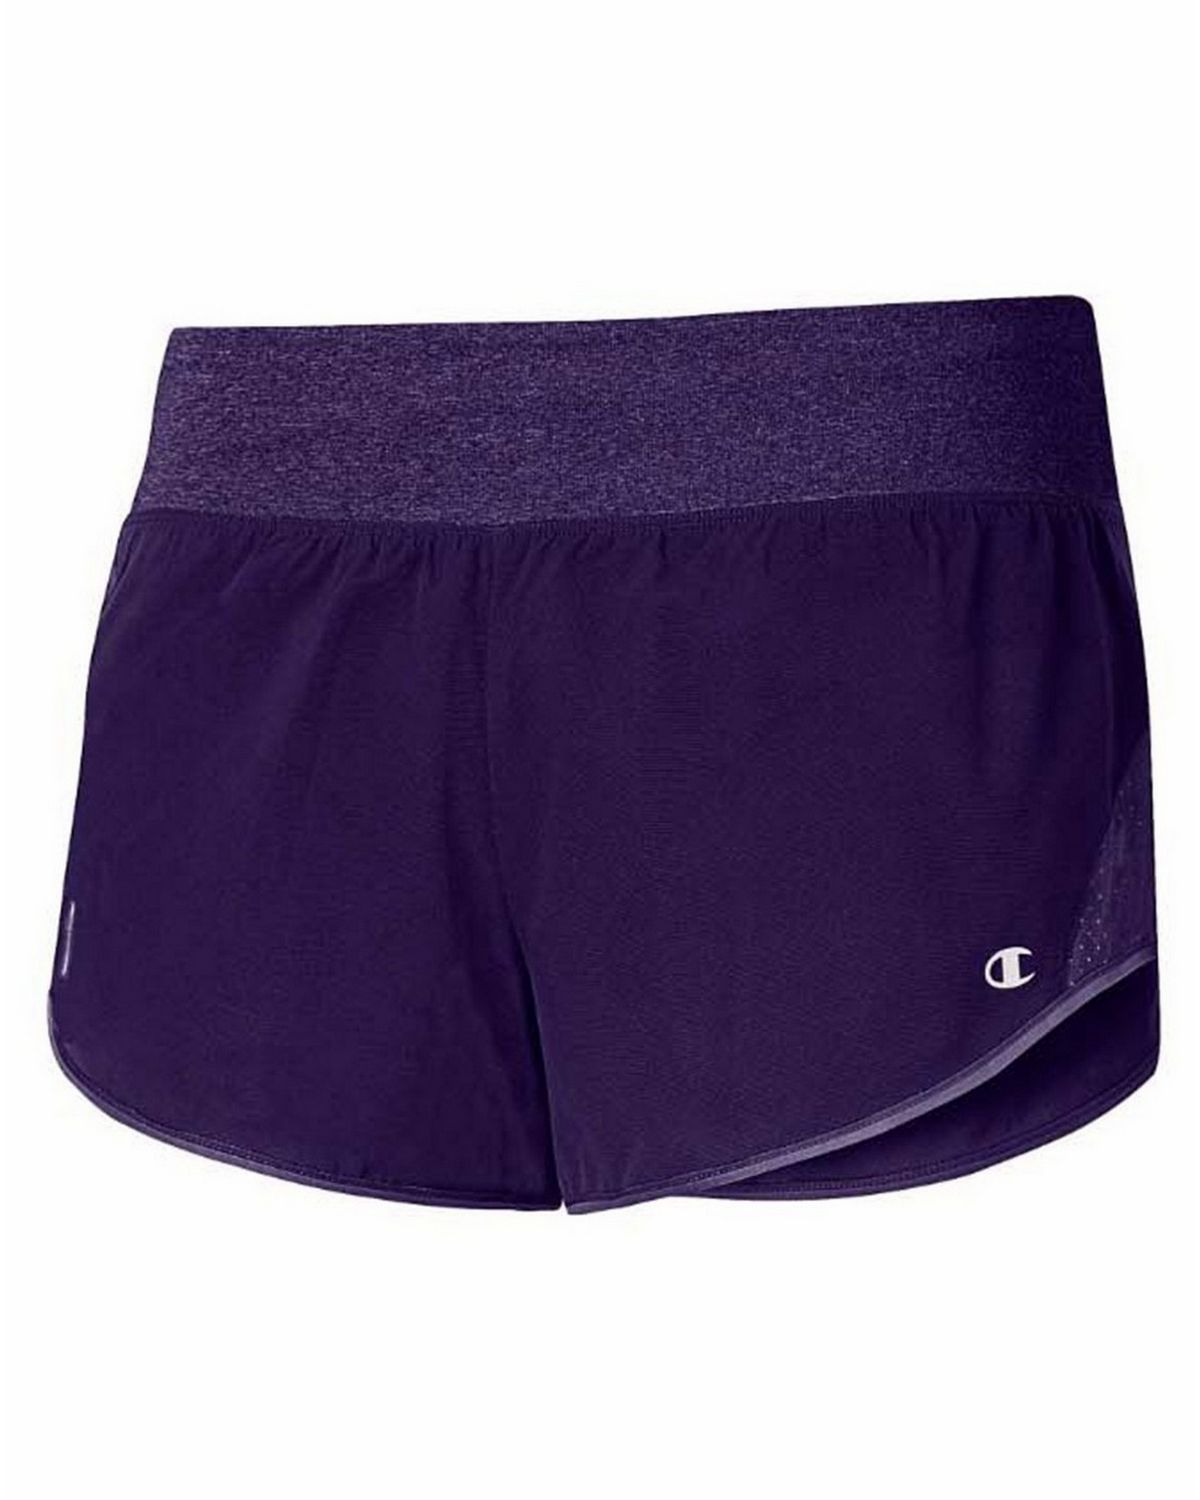 Champion M0912t Gear Womens Shorts With Brief - Mystic Purple/Mystic Purp Htr - M M0912T